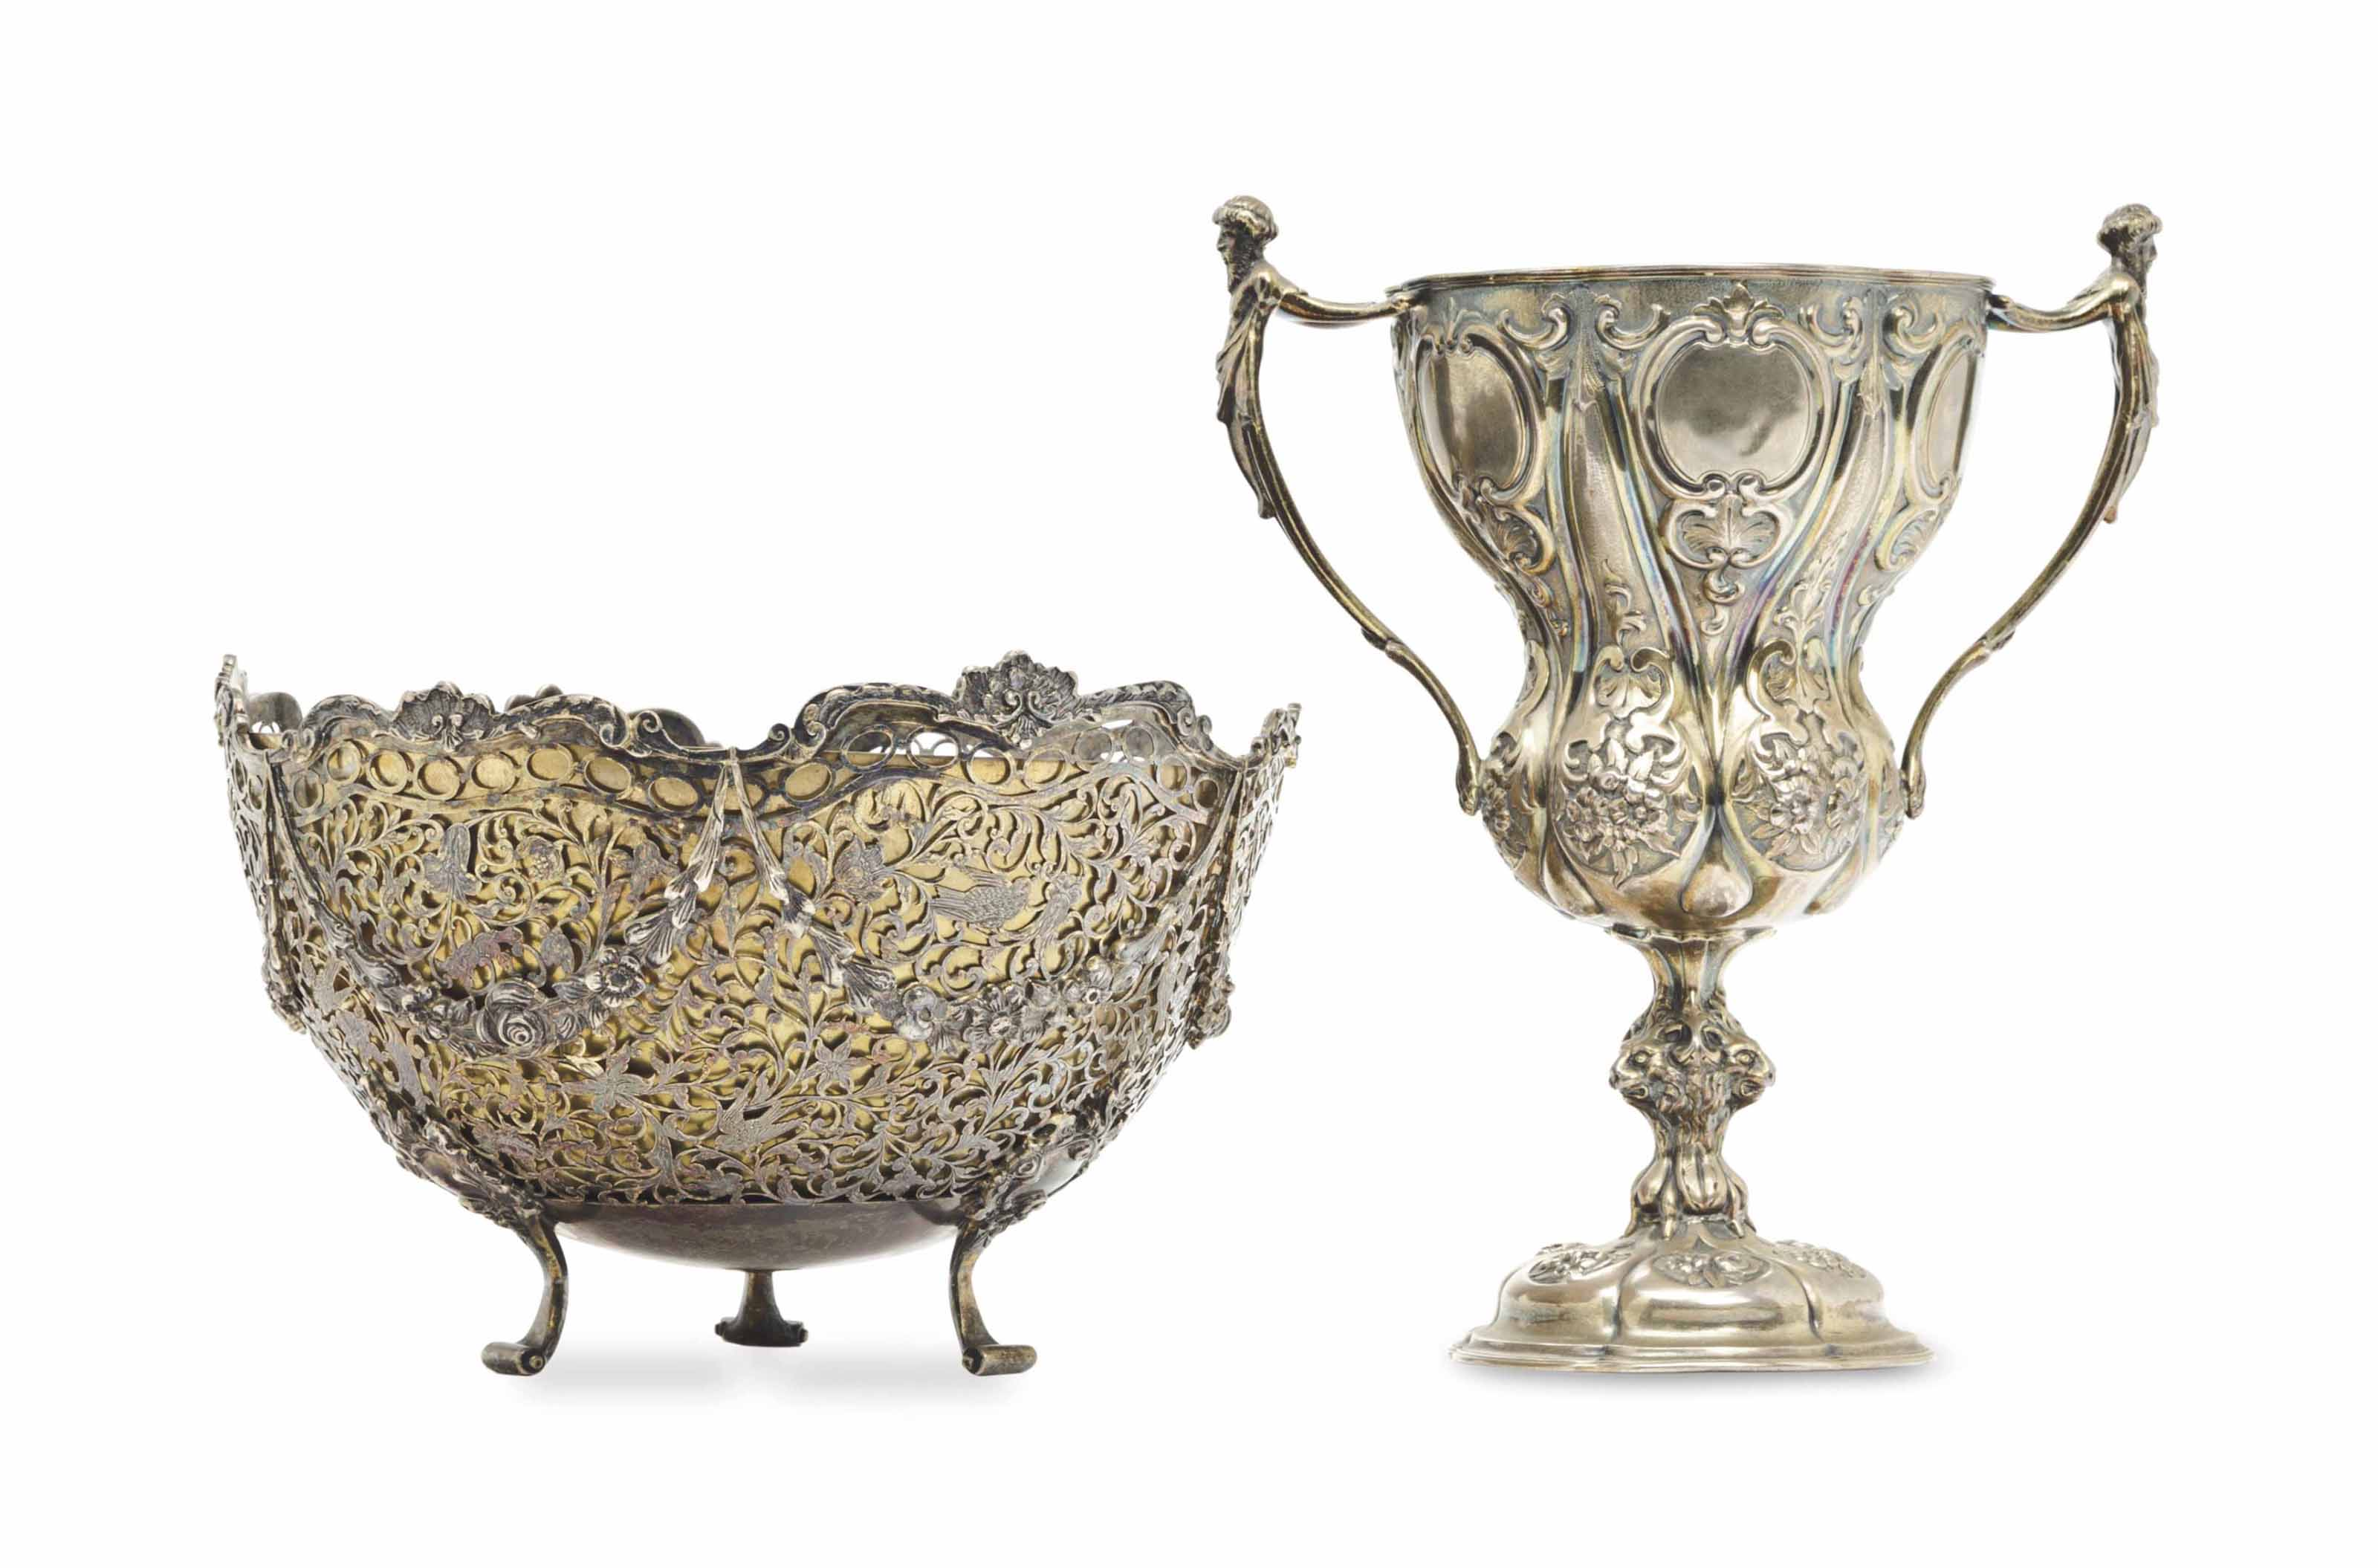 A VICTORIAN SILVER-GILT TWO-HANDLED CUP, AND AN EDWARD VII SILVER-GILT RETICULATED BOWL,